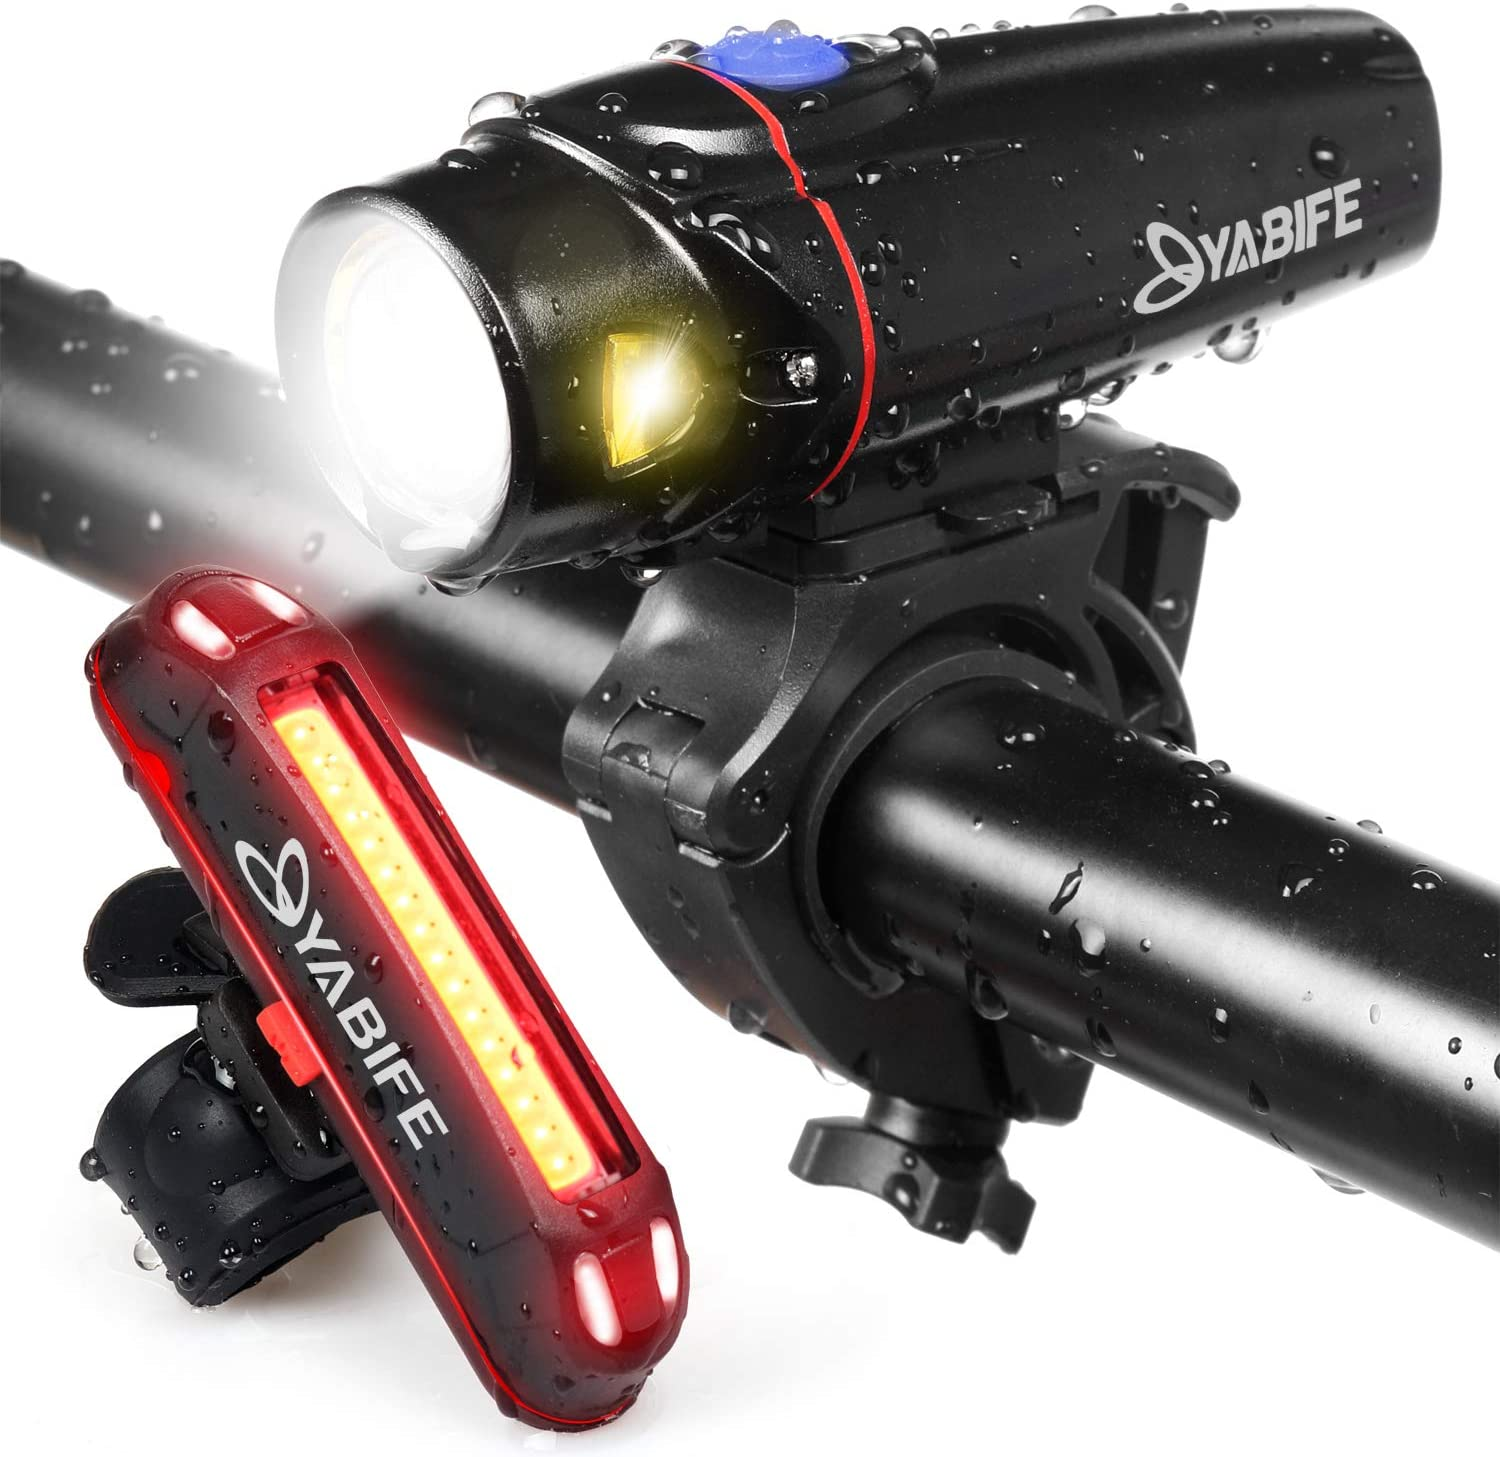 Yabife Bike Lights Sets Front Rear Waterproof Super Bright with Sensor Mode 6 Modes 100 Lumens Back Cycling Light USB Rechargeable 4 Modes 350 Lumens Bicycle Headlights